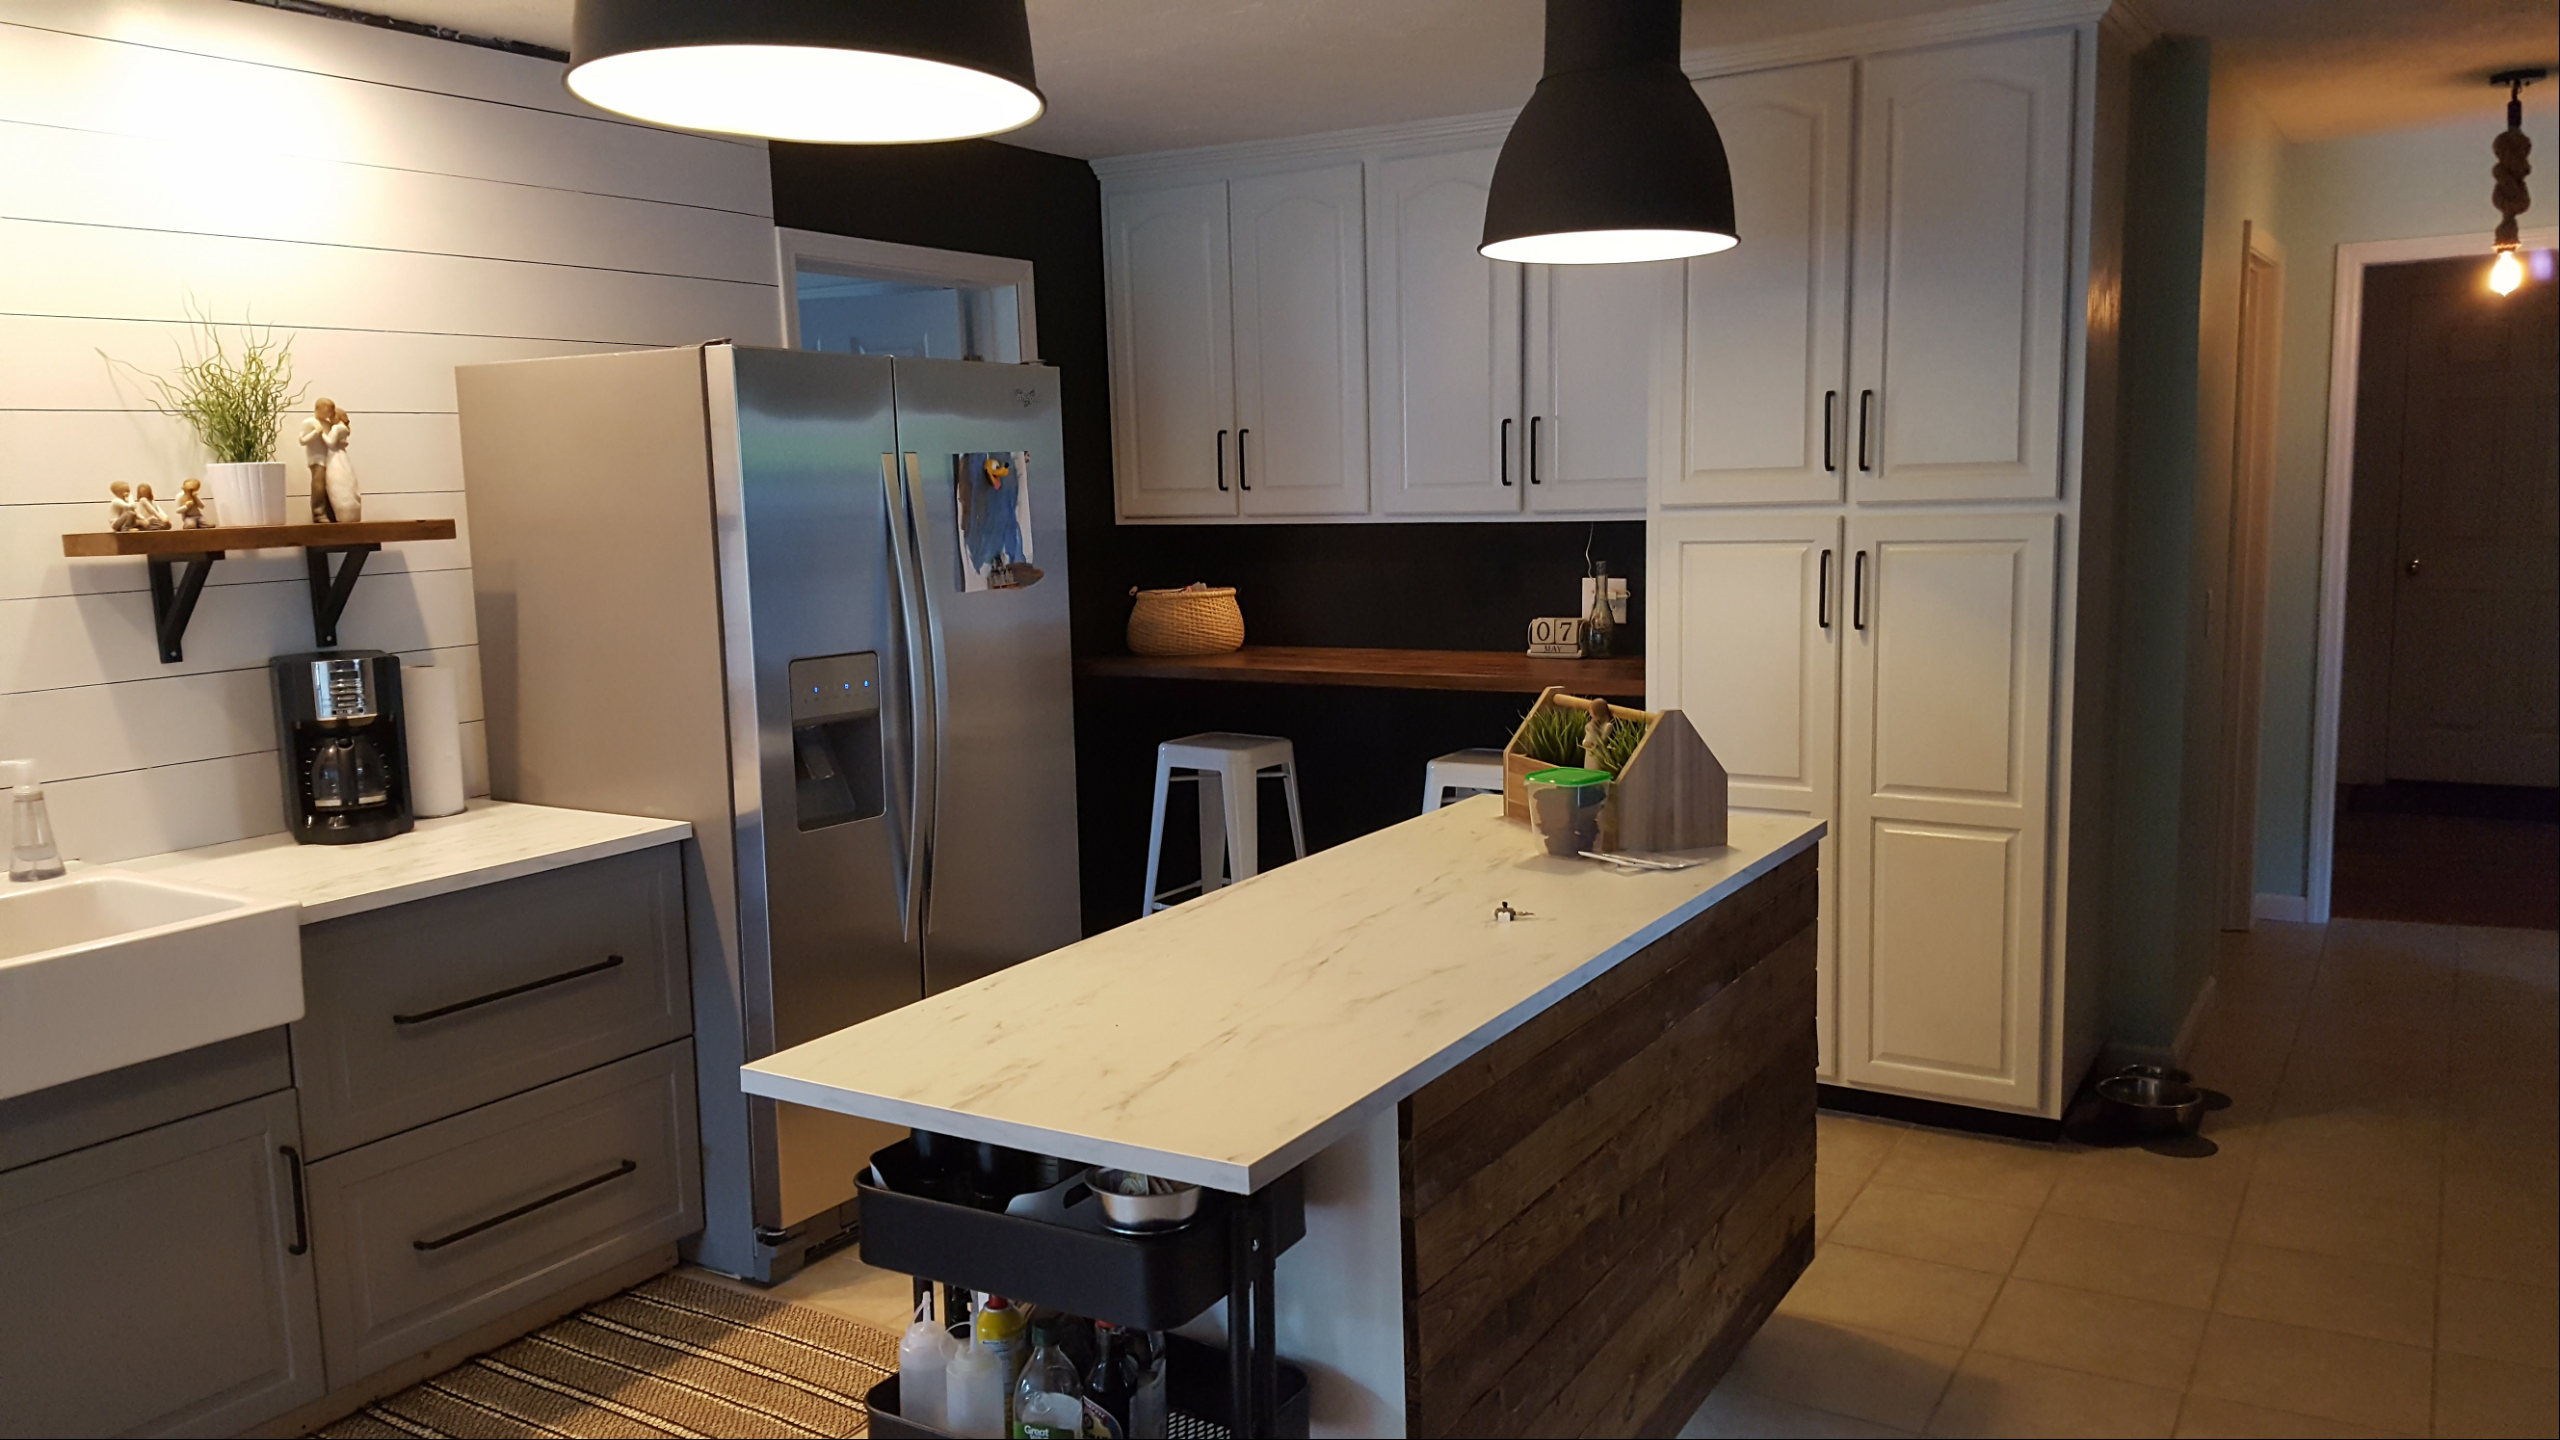 Before And After An Unbelievable 5k Kitchen Renovation